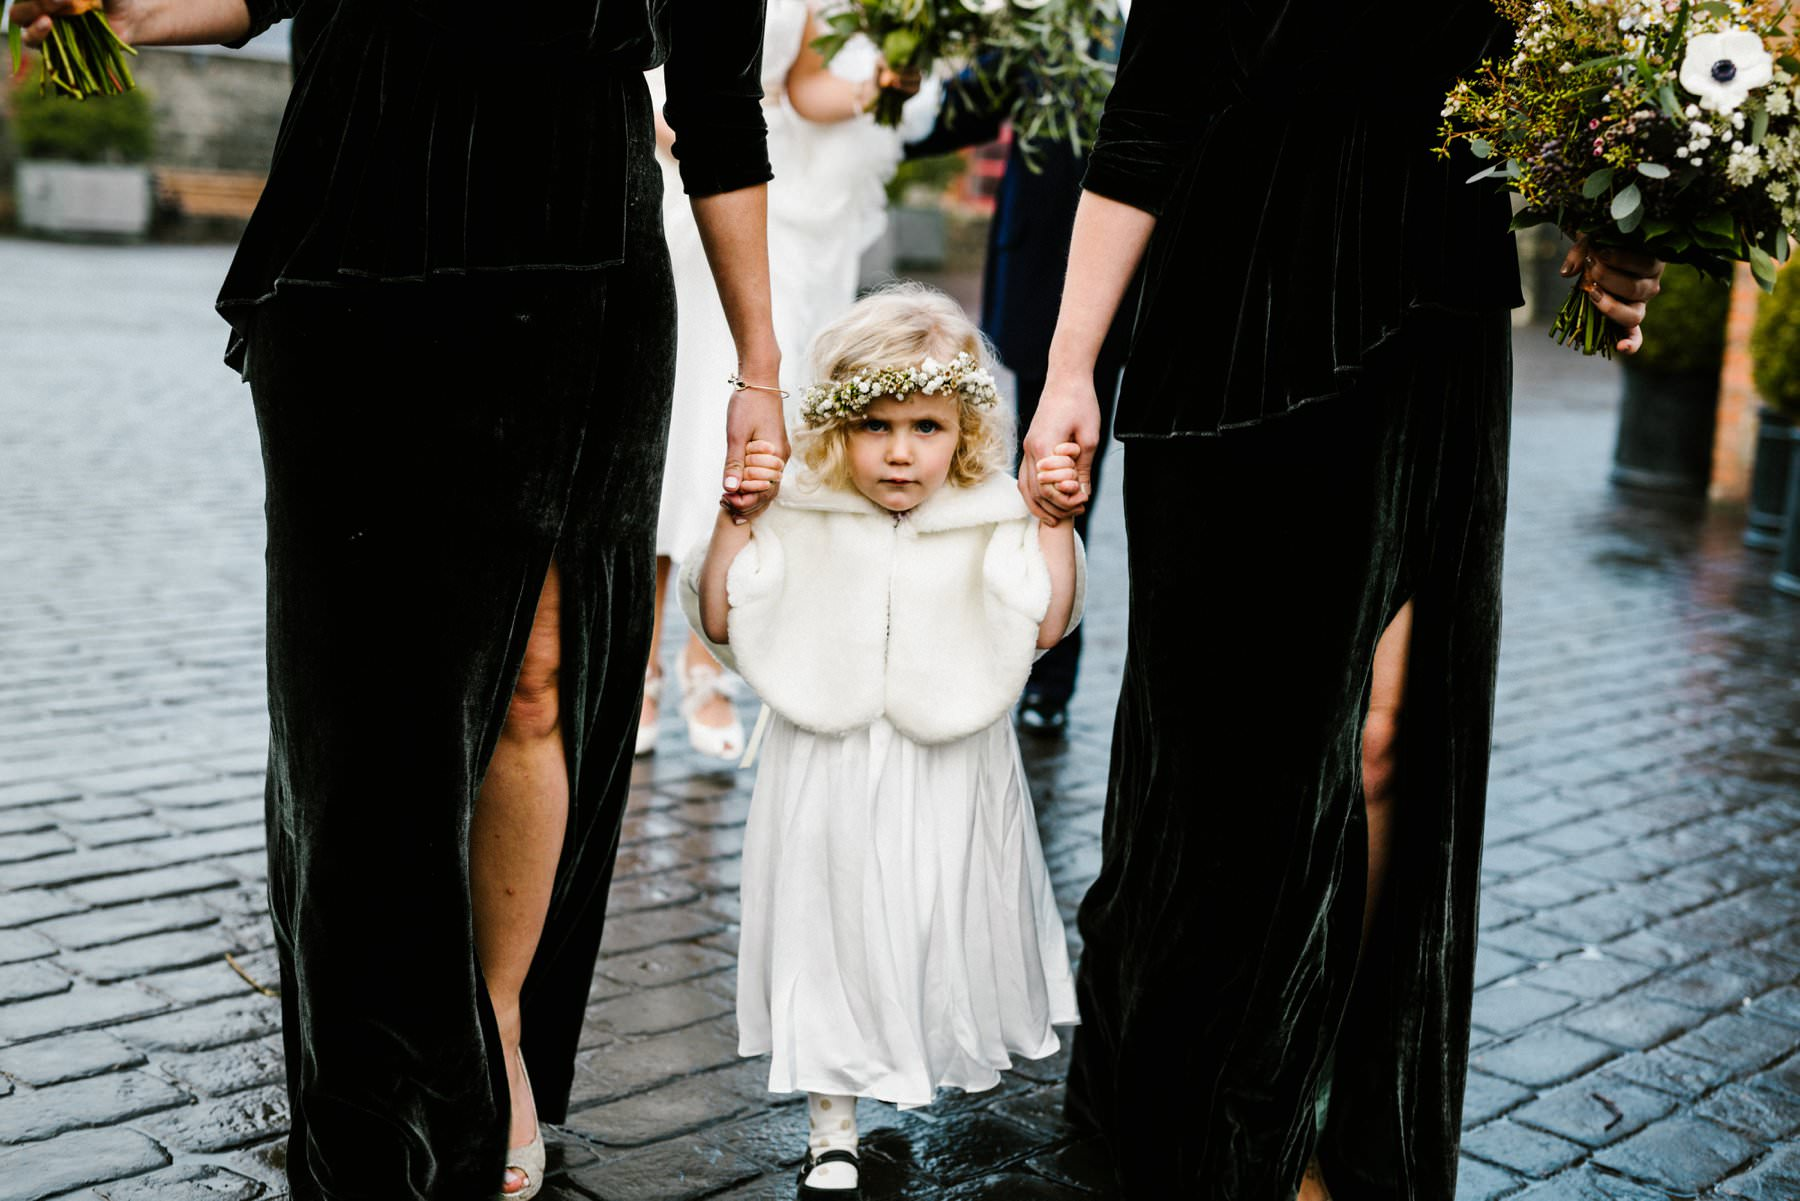 Cute flower girl at a winter wedding in Ireland